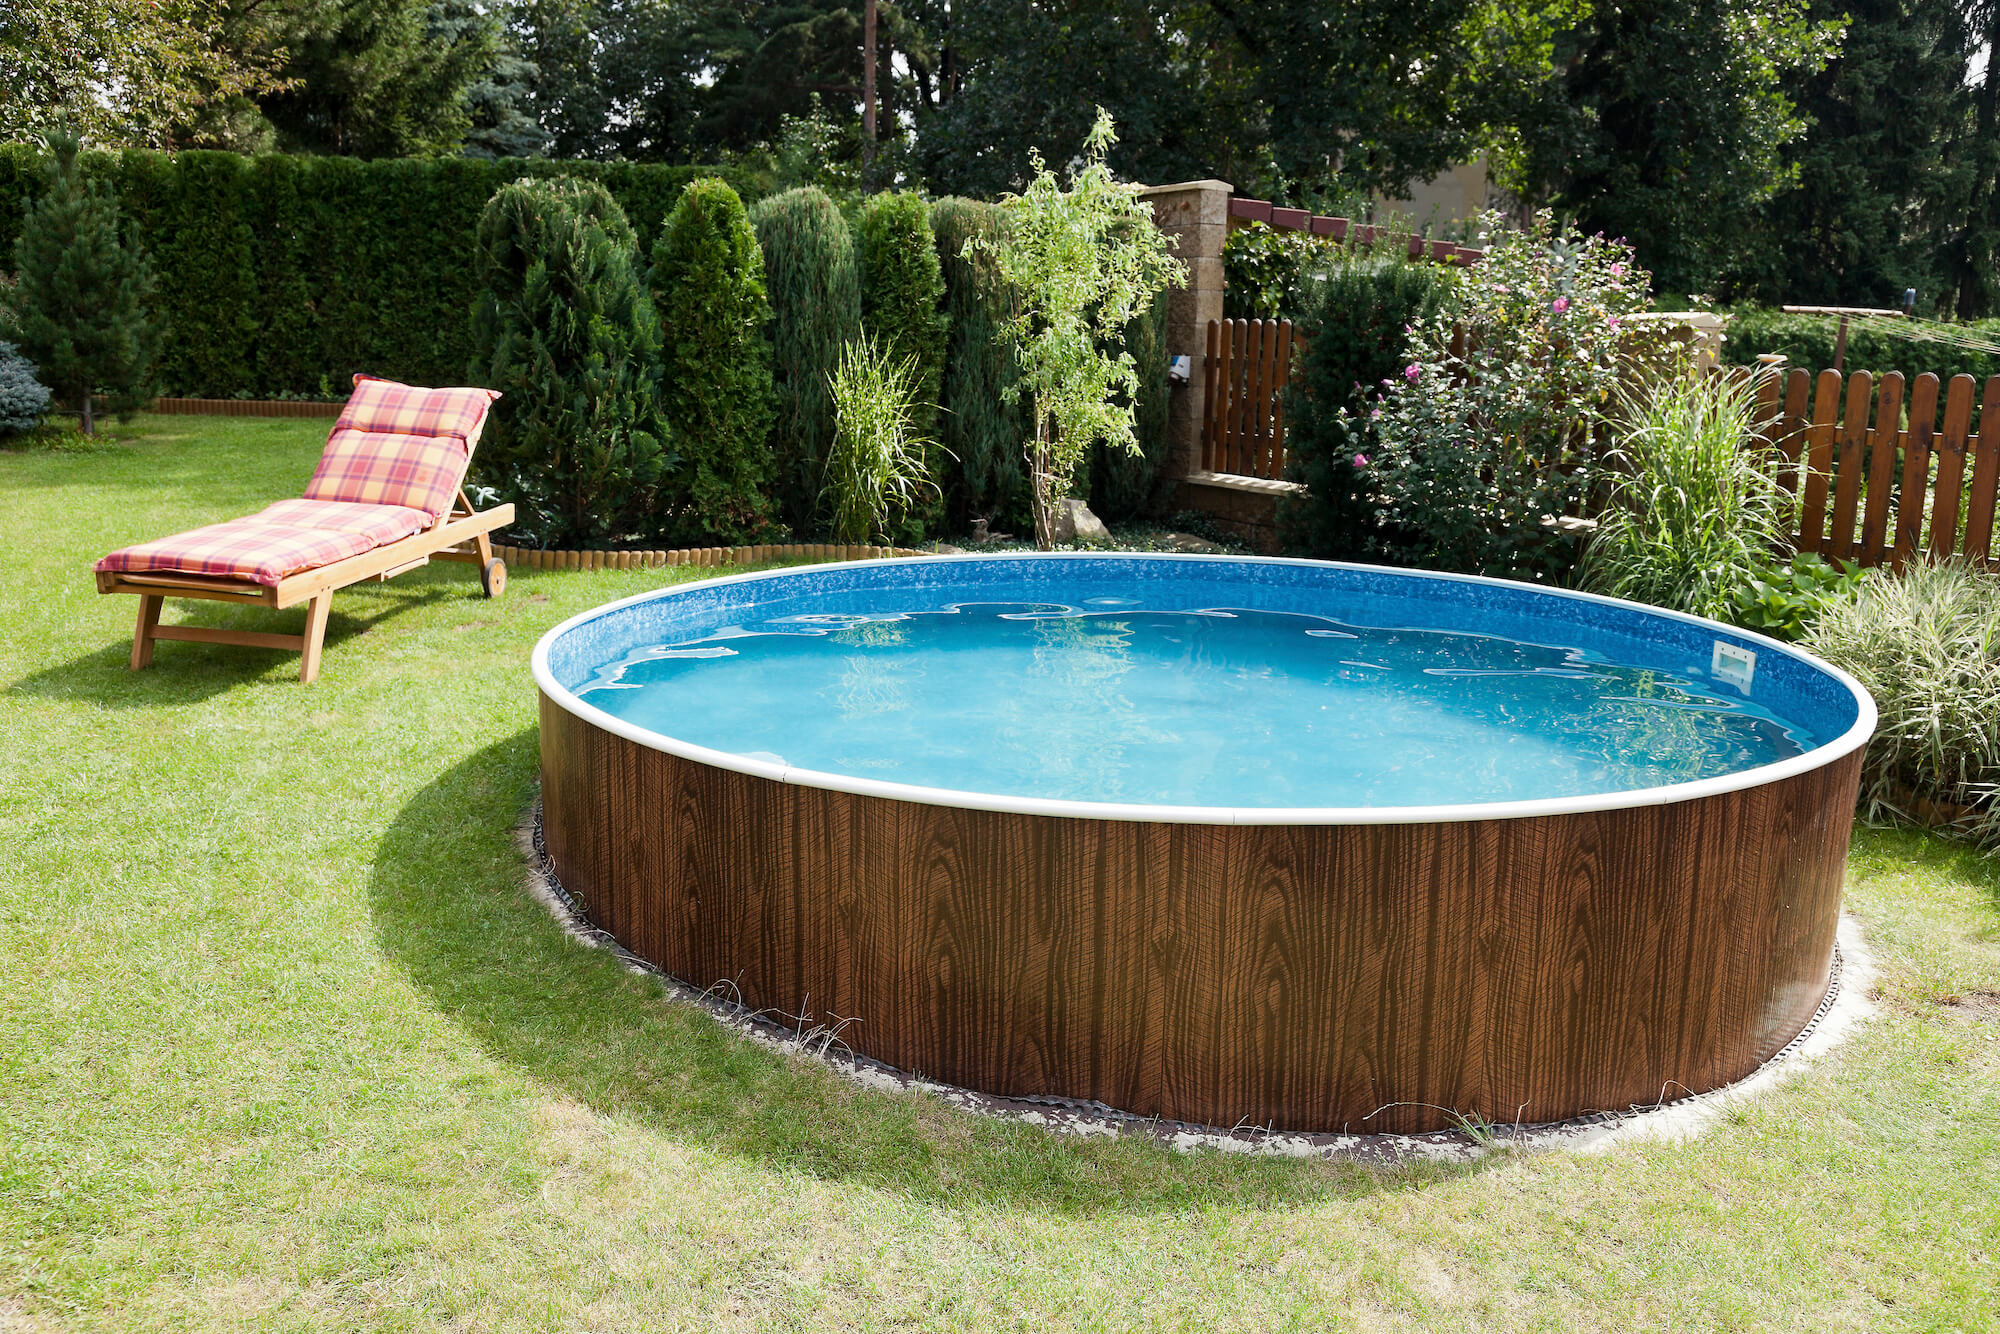 Above ground swimming pools for sale online uk 1st - How to build an above ground swimming pool ...